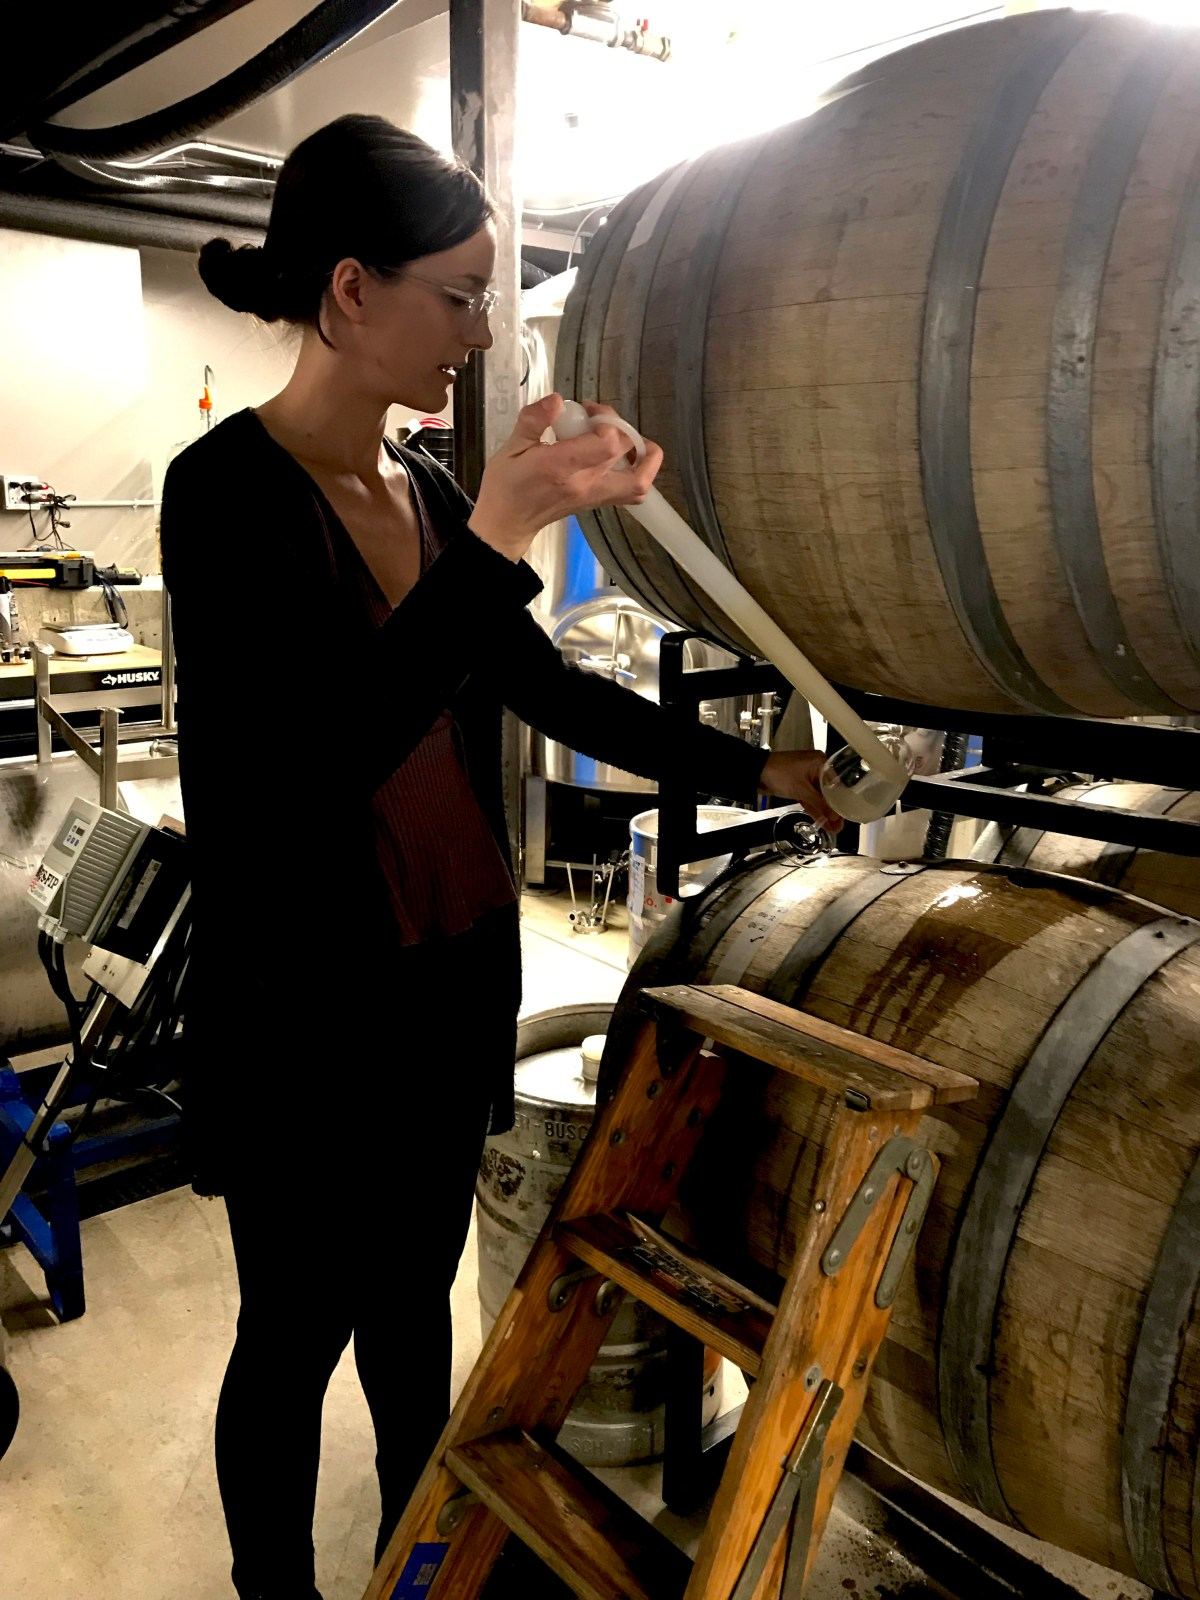 Anne pulling from barrel